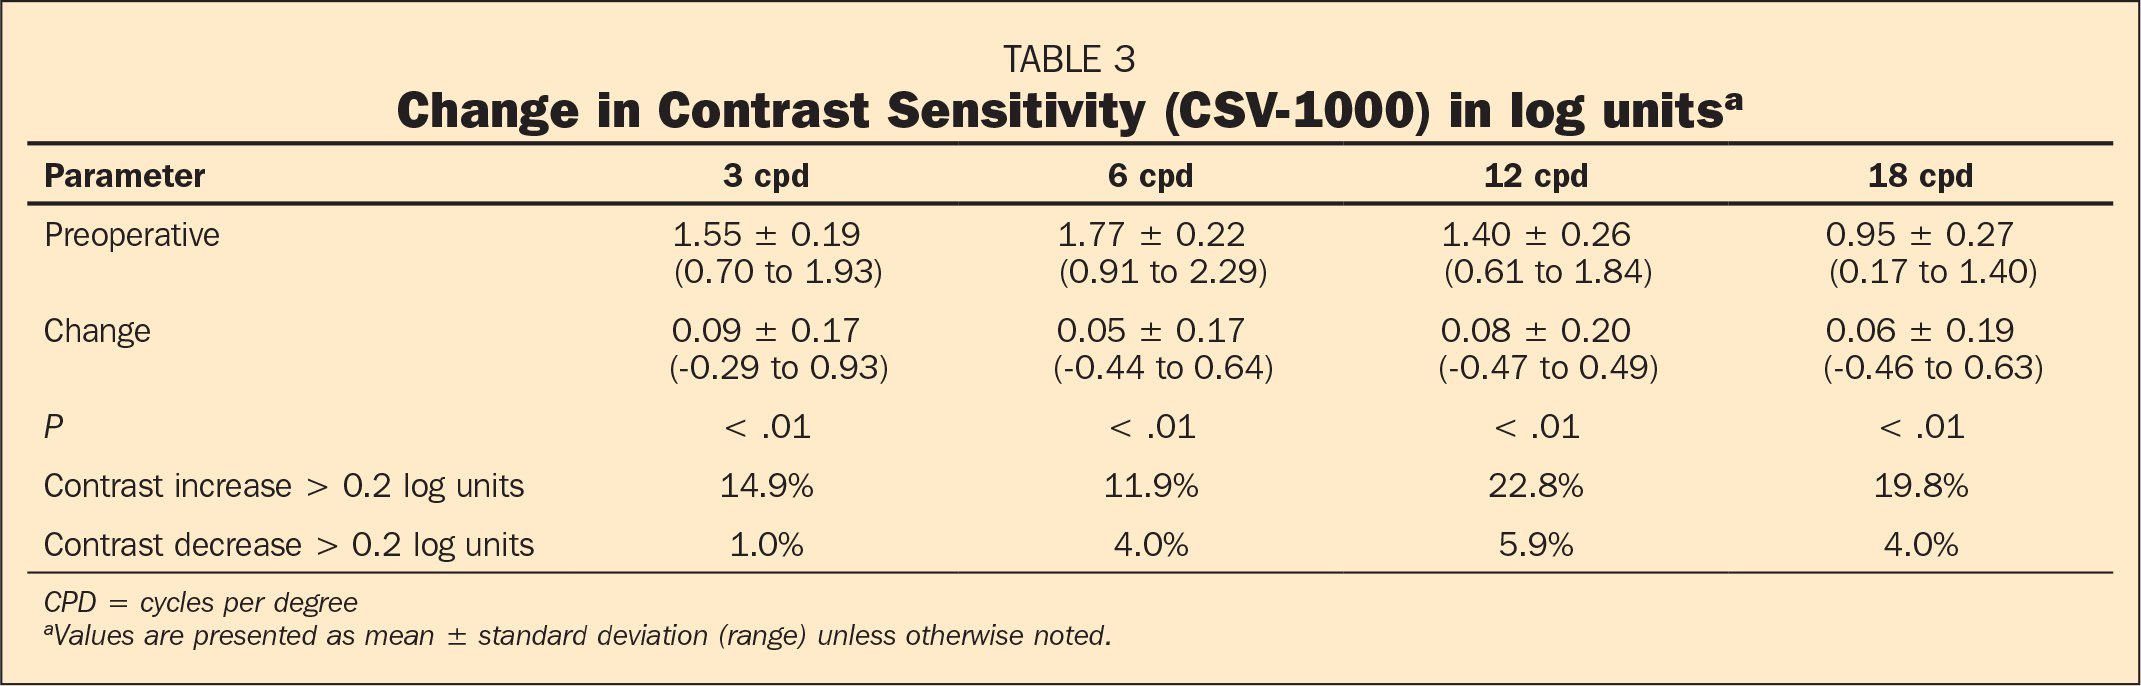 Change in Contrast Sensitivity (CSV-1000) in log unitsa